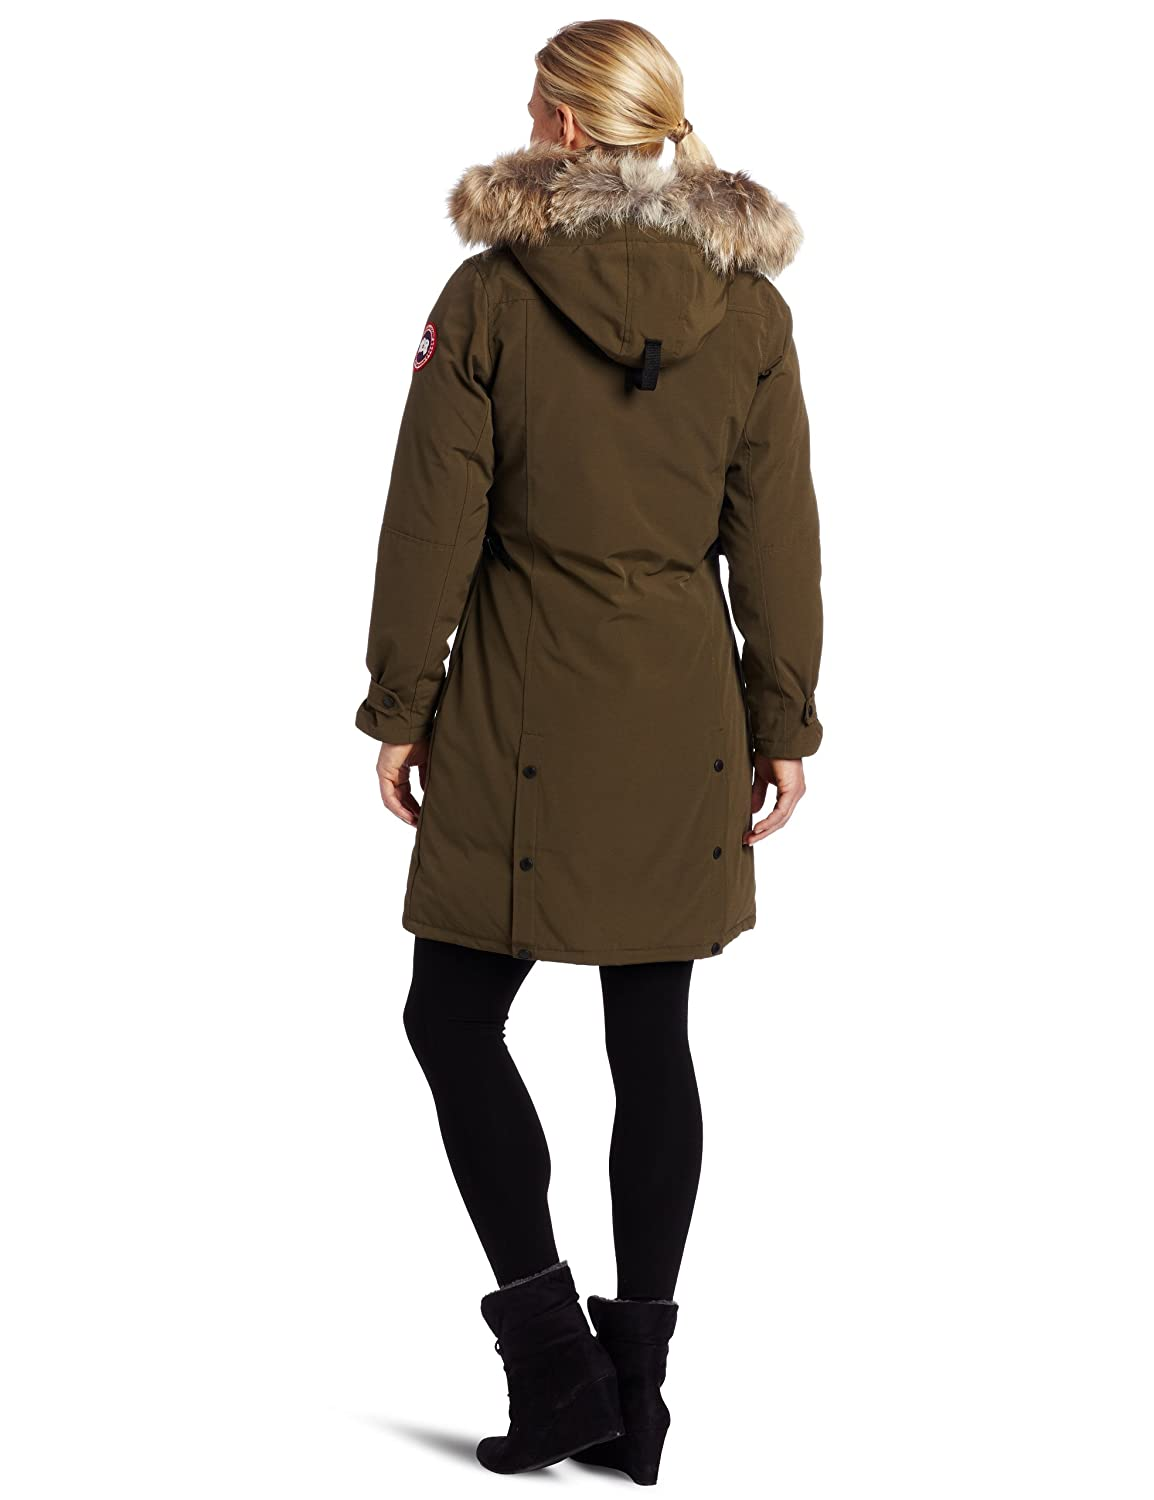 ea2221721656 Amazon.com  Canada Goose Women s Kensington Parka Coat  Clothing